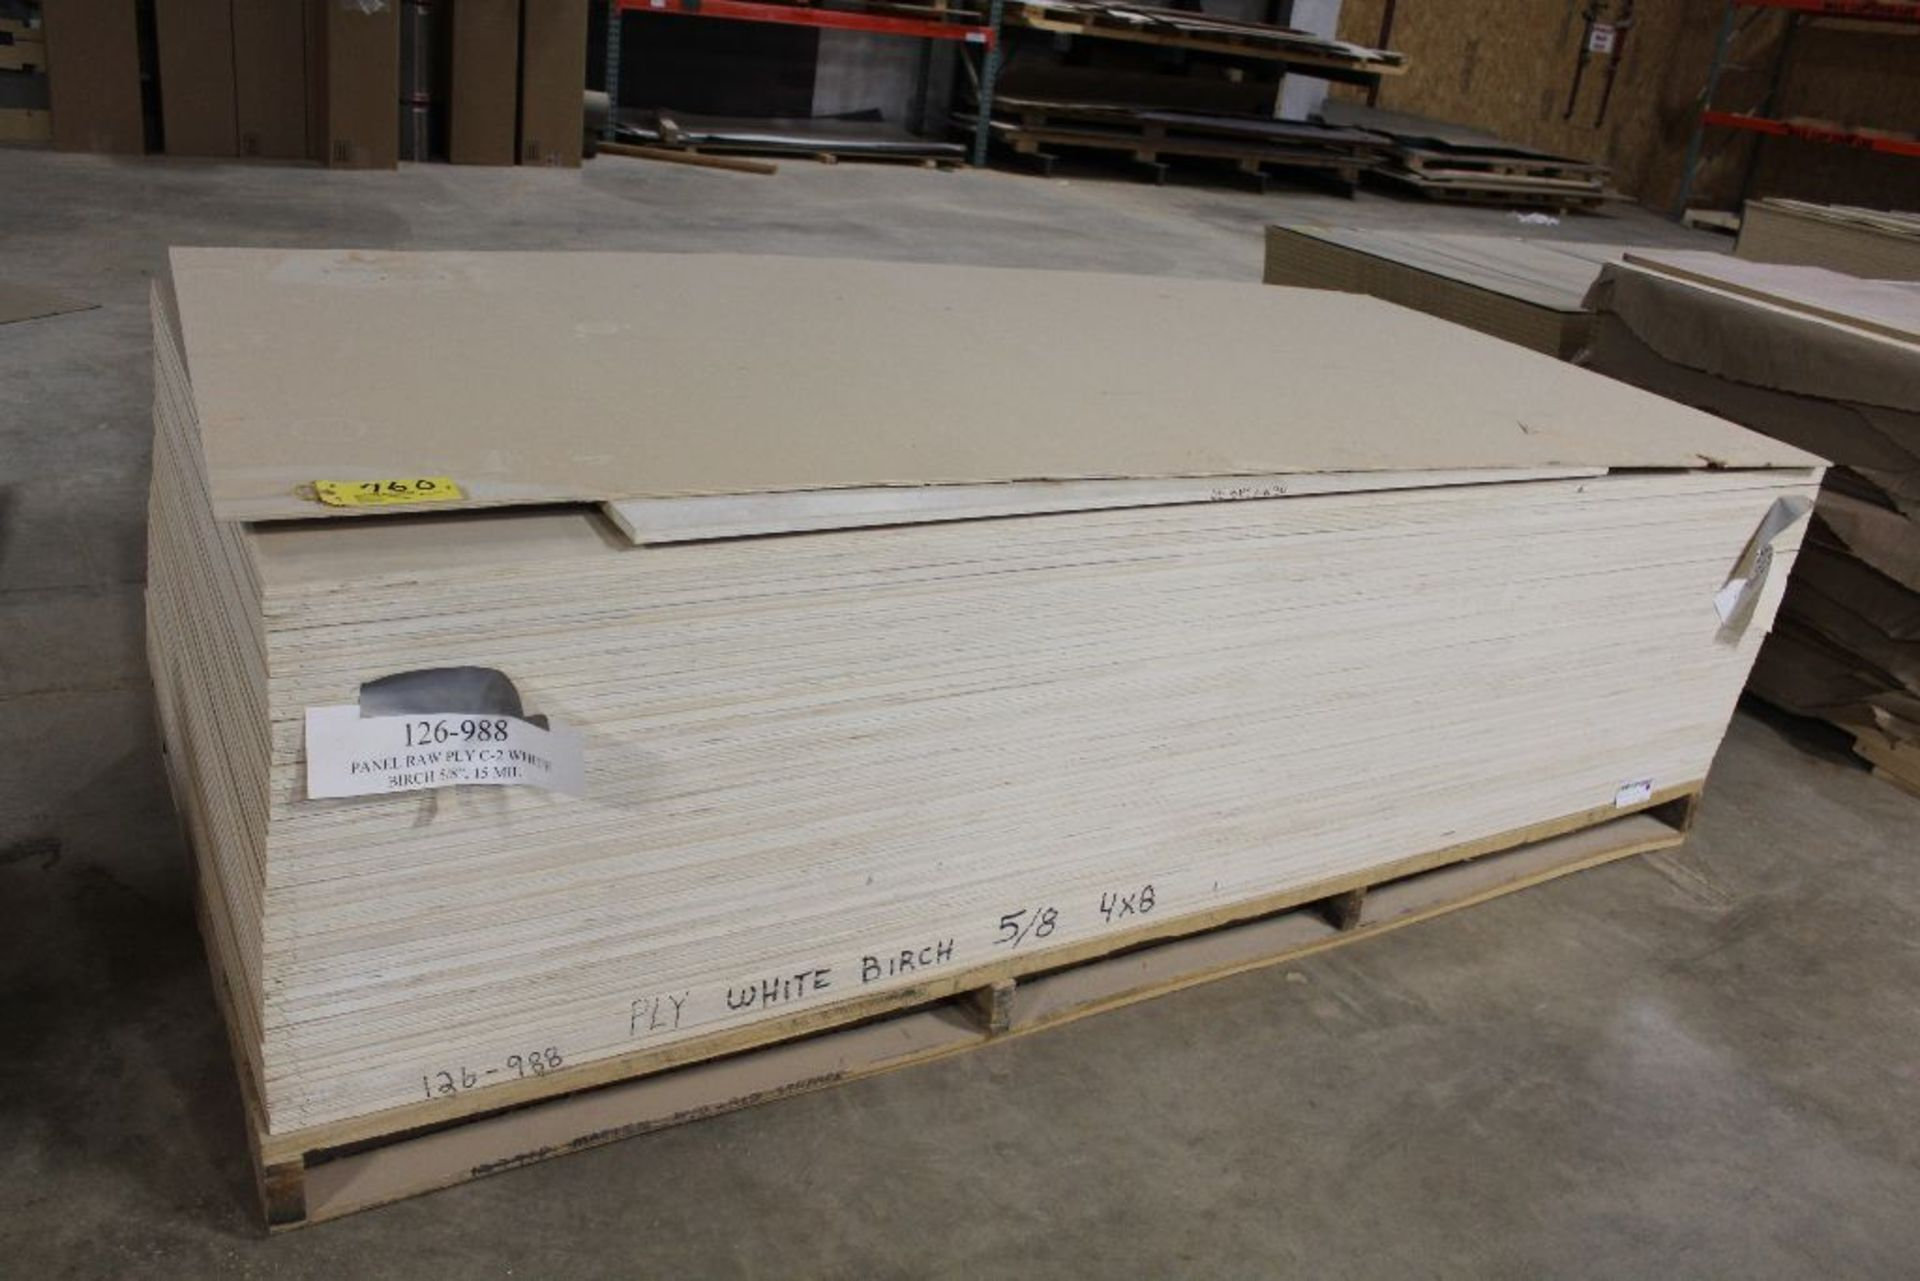 "Lot 760 - Lumber, (41) plywood white birch 5/8"" x 4 x 8."